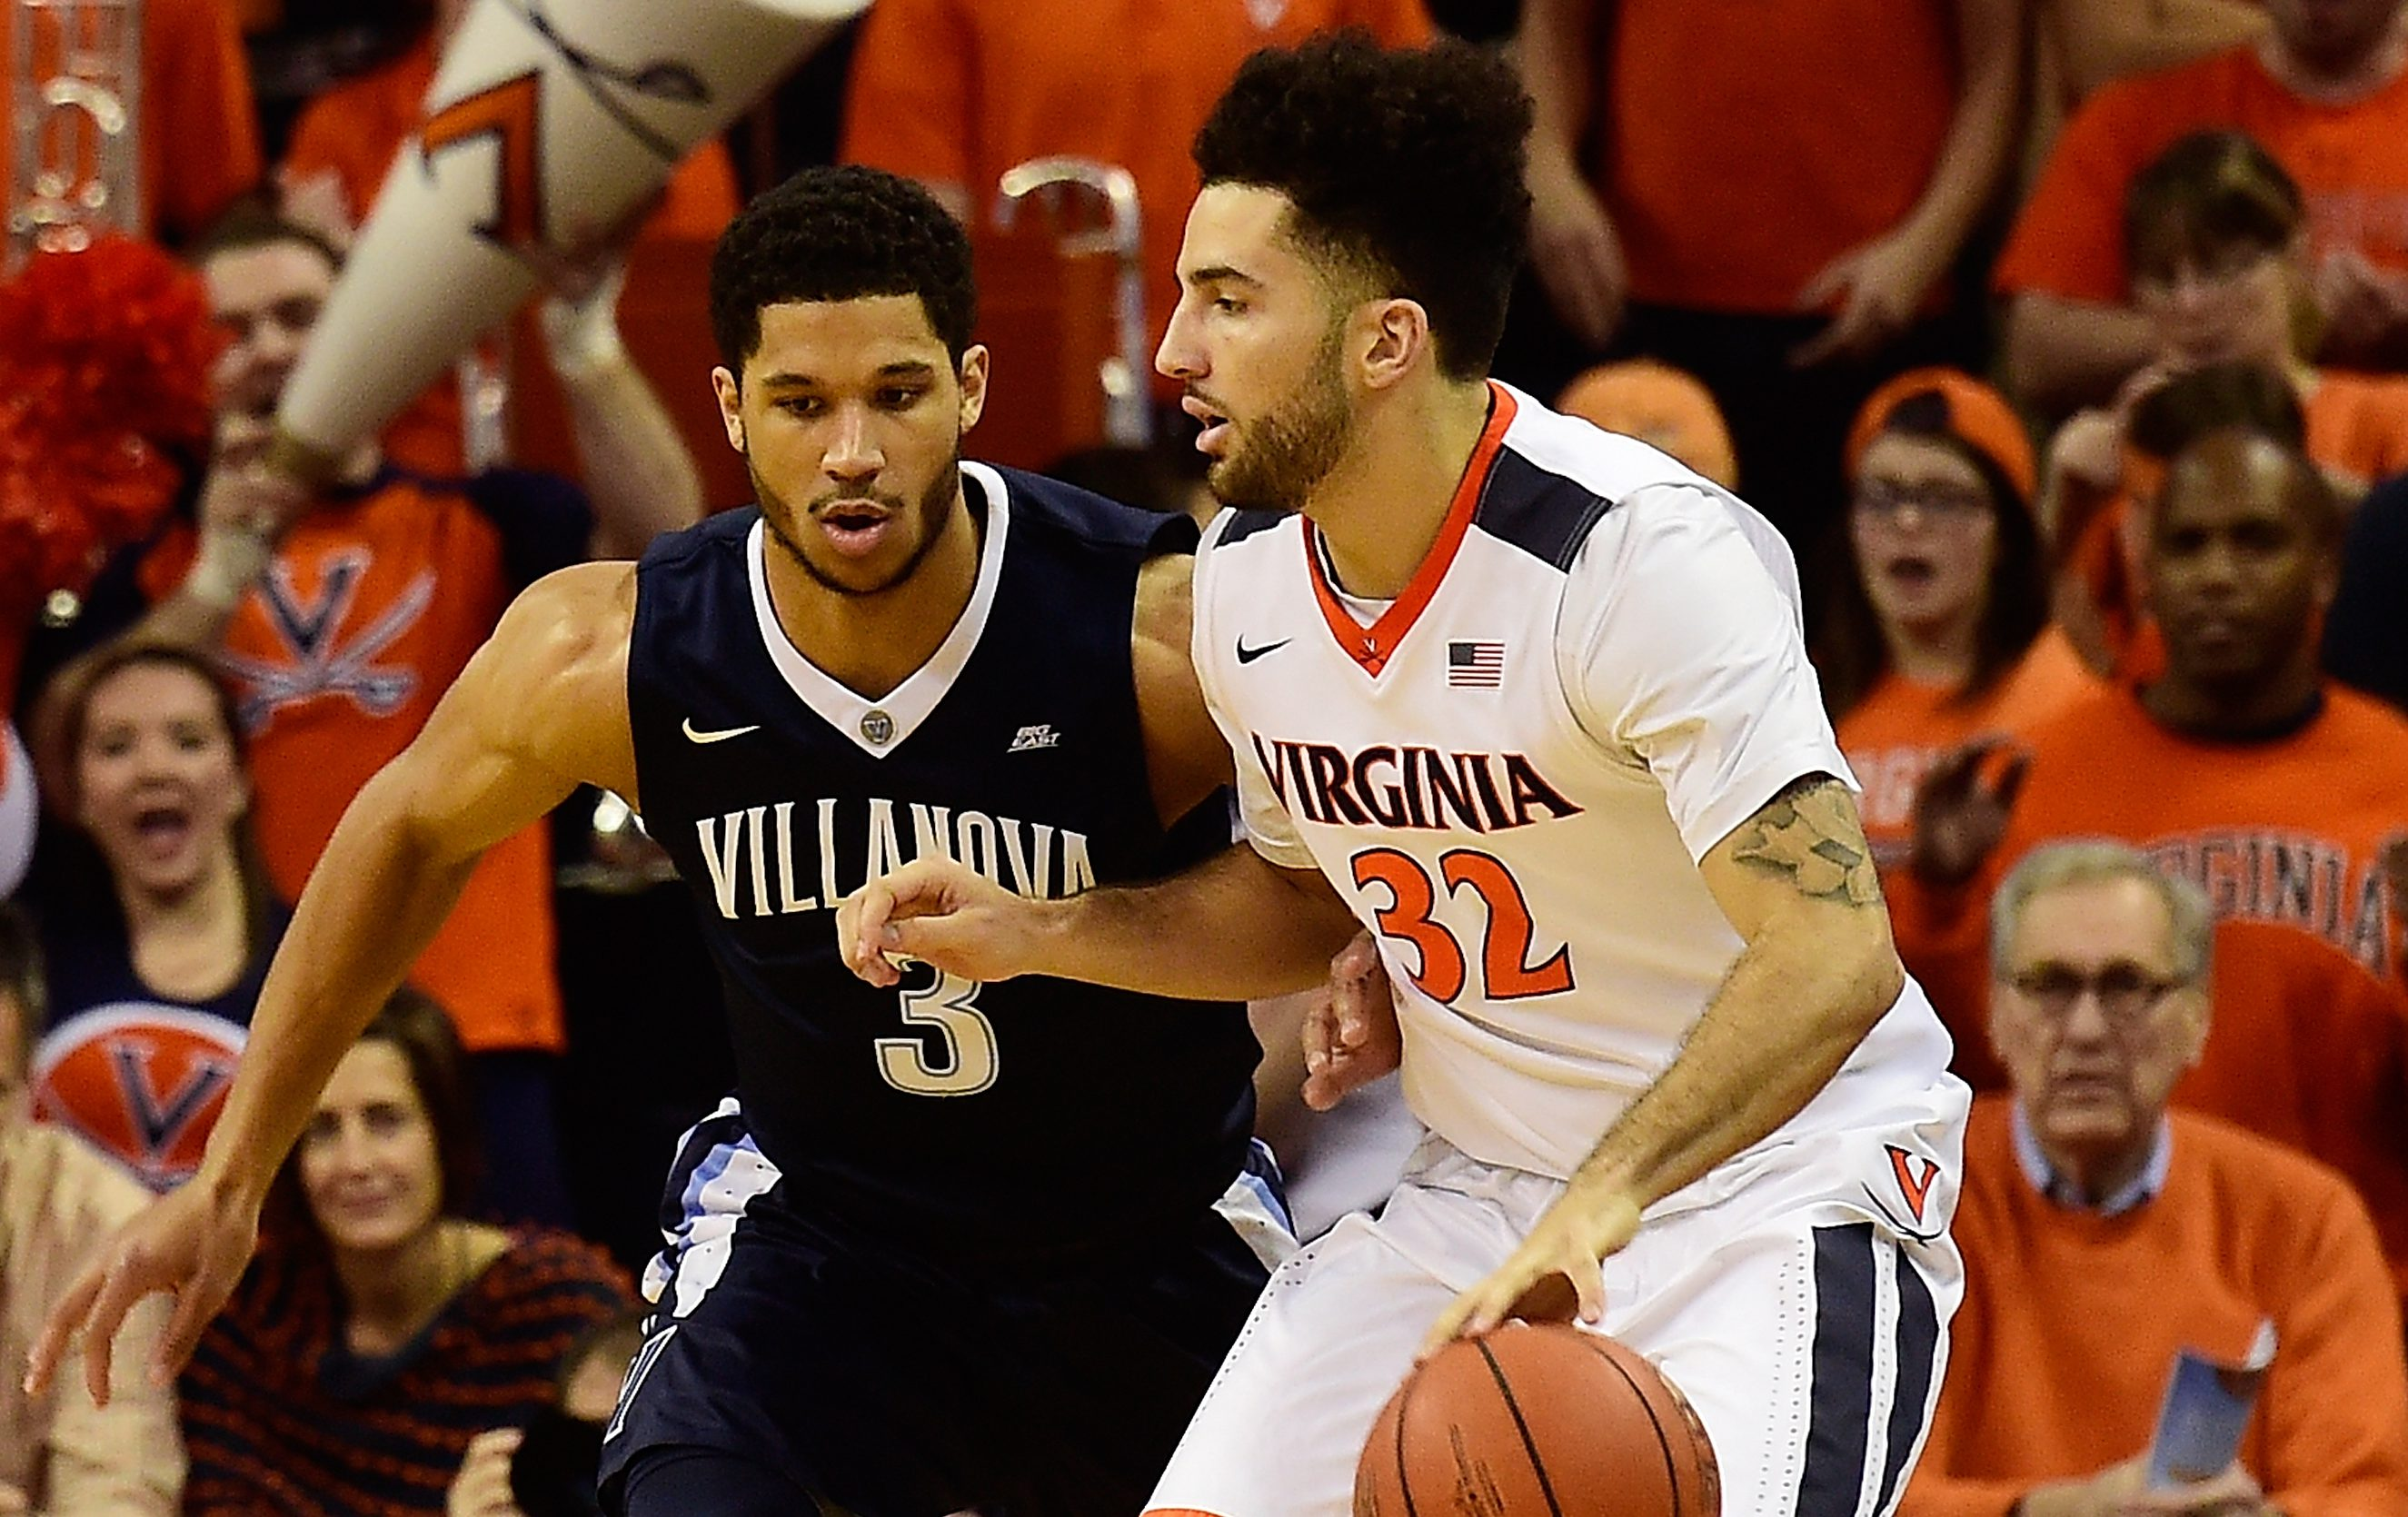 CHARLOTTESVILLE, VA - DECEMBER 19: London Perrantes #32 of the Virginia Cavaliers dribbles the ball against Josh Hart #3 of the Villanova Wildcats in the first half during a game at John Paul Jones Arena on December 19, 2015 in Charlottesville, Virginia. (Photo by Patrick McDermott/Getty Images)